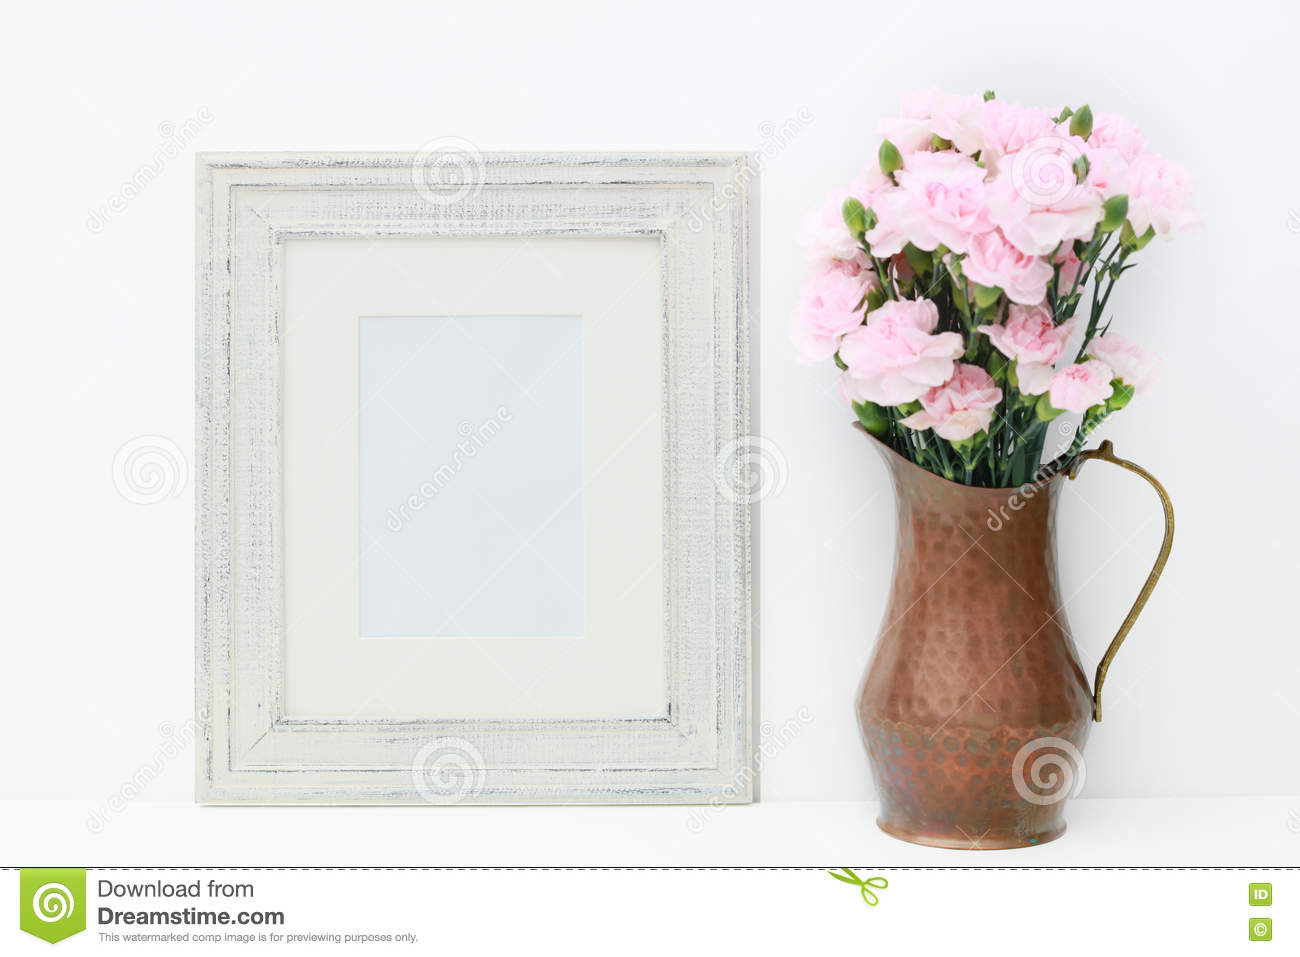 A mock up of a empty white frame and flowers.